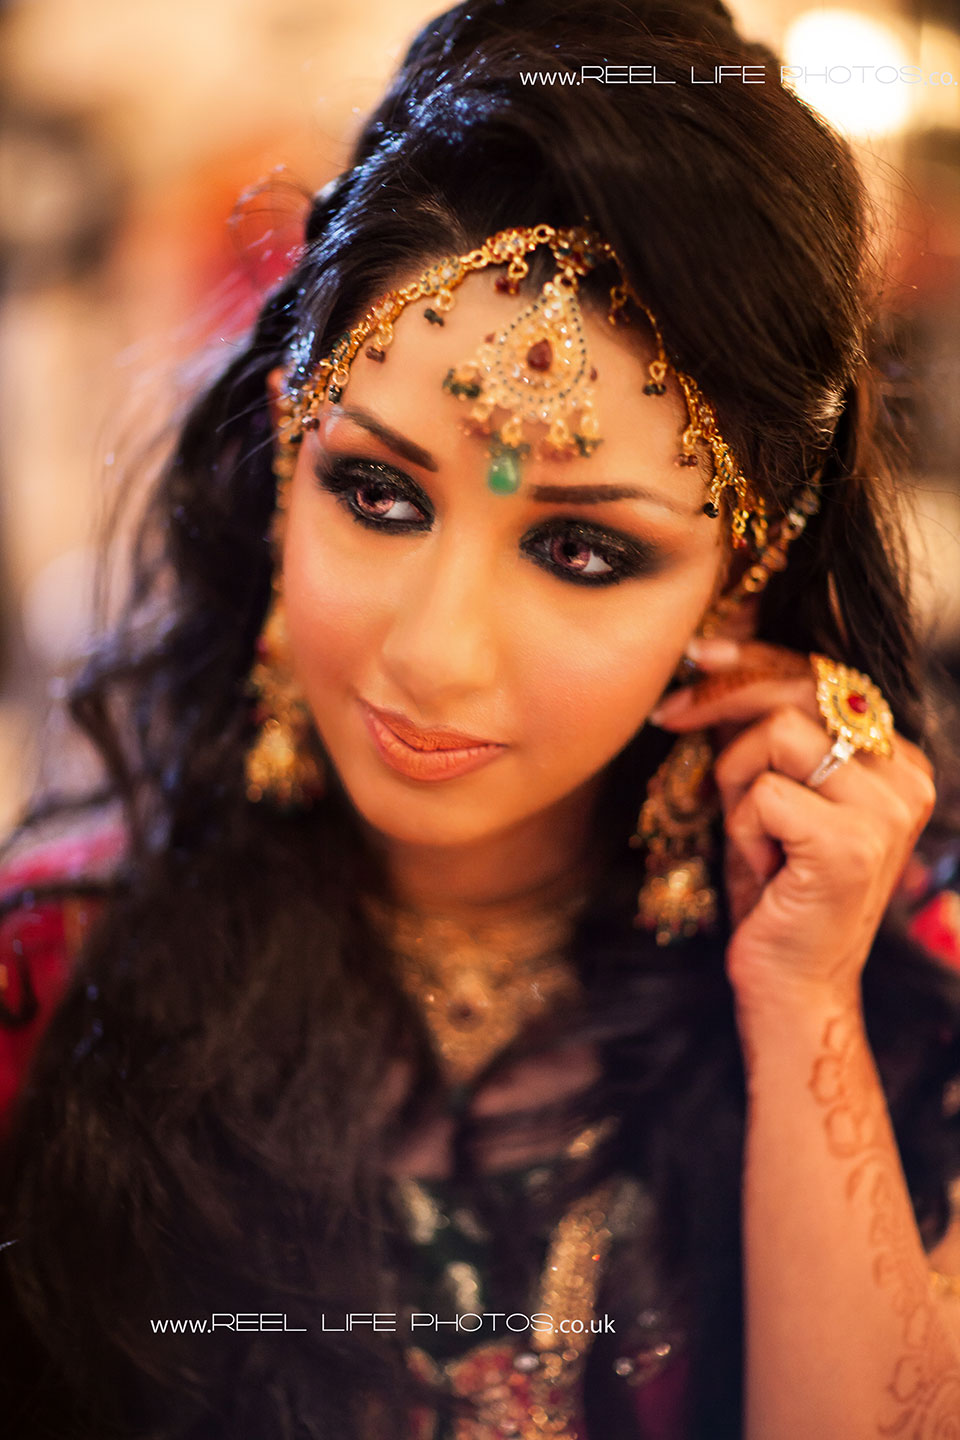 Reellifephotos wedding photography blog archive beautiful asian asian brides wedding portrait in leeds thecheapjerseys Gallery